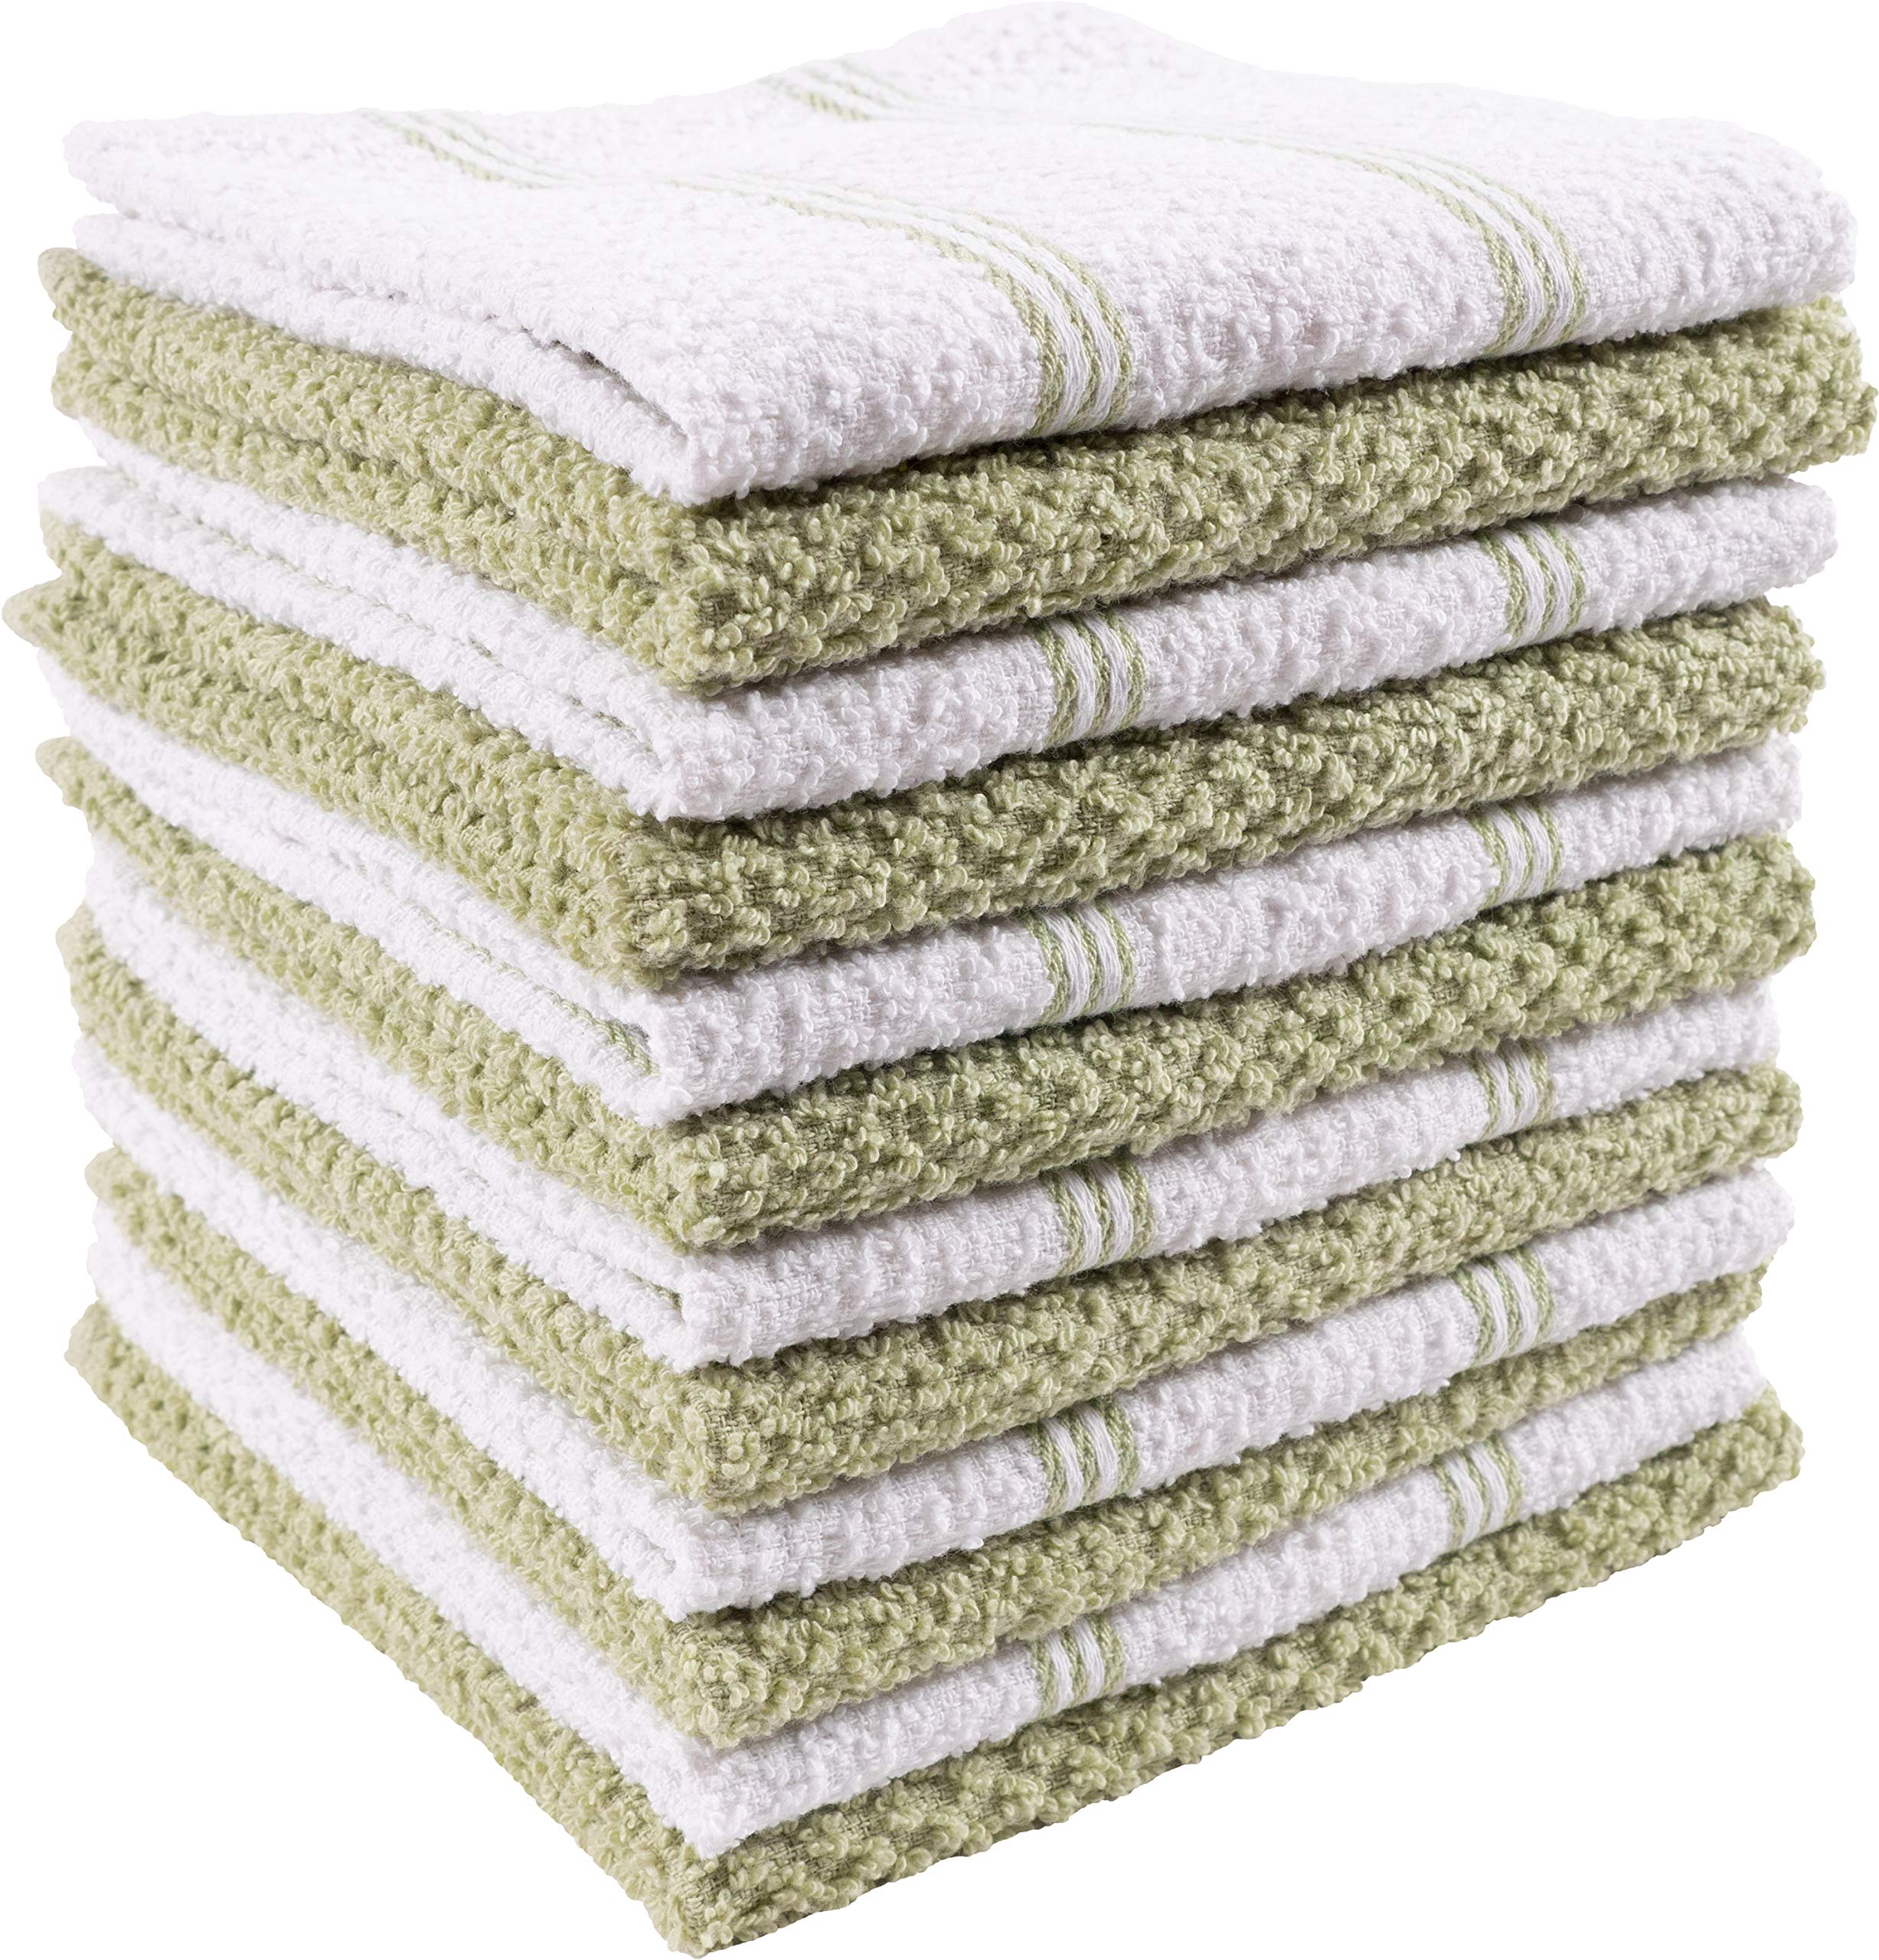 KAF Home Pantry Piedmont Dish Cloths (Set of 12, 12x12 inches), 100% Cotton, Ultra Absorbent Terry Towels - Sage